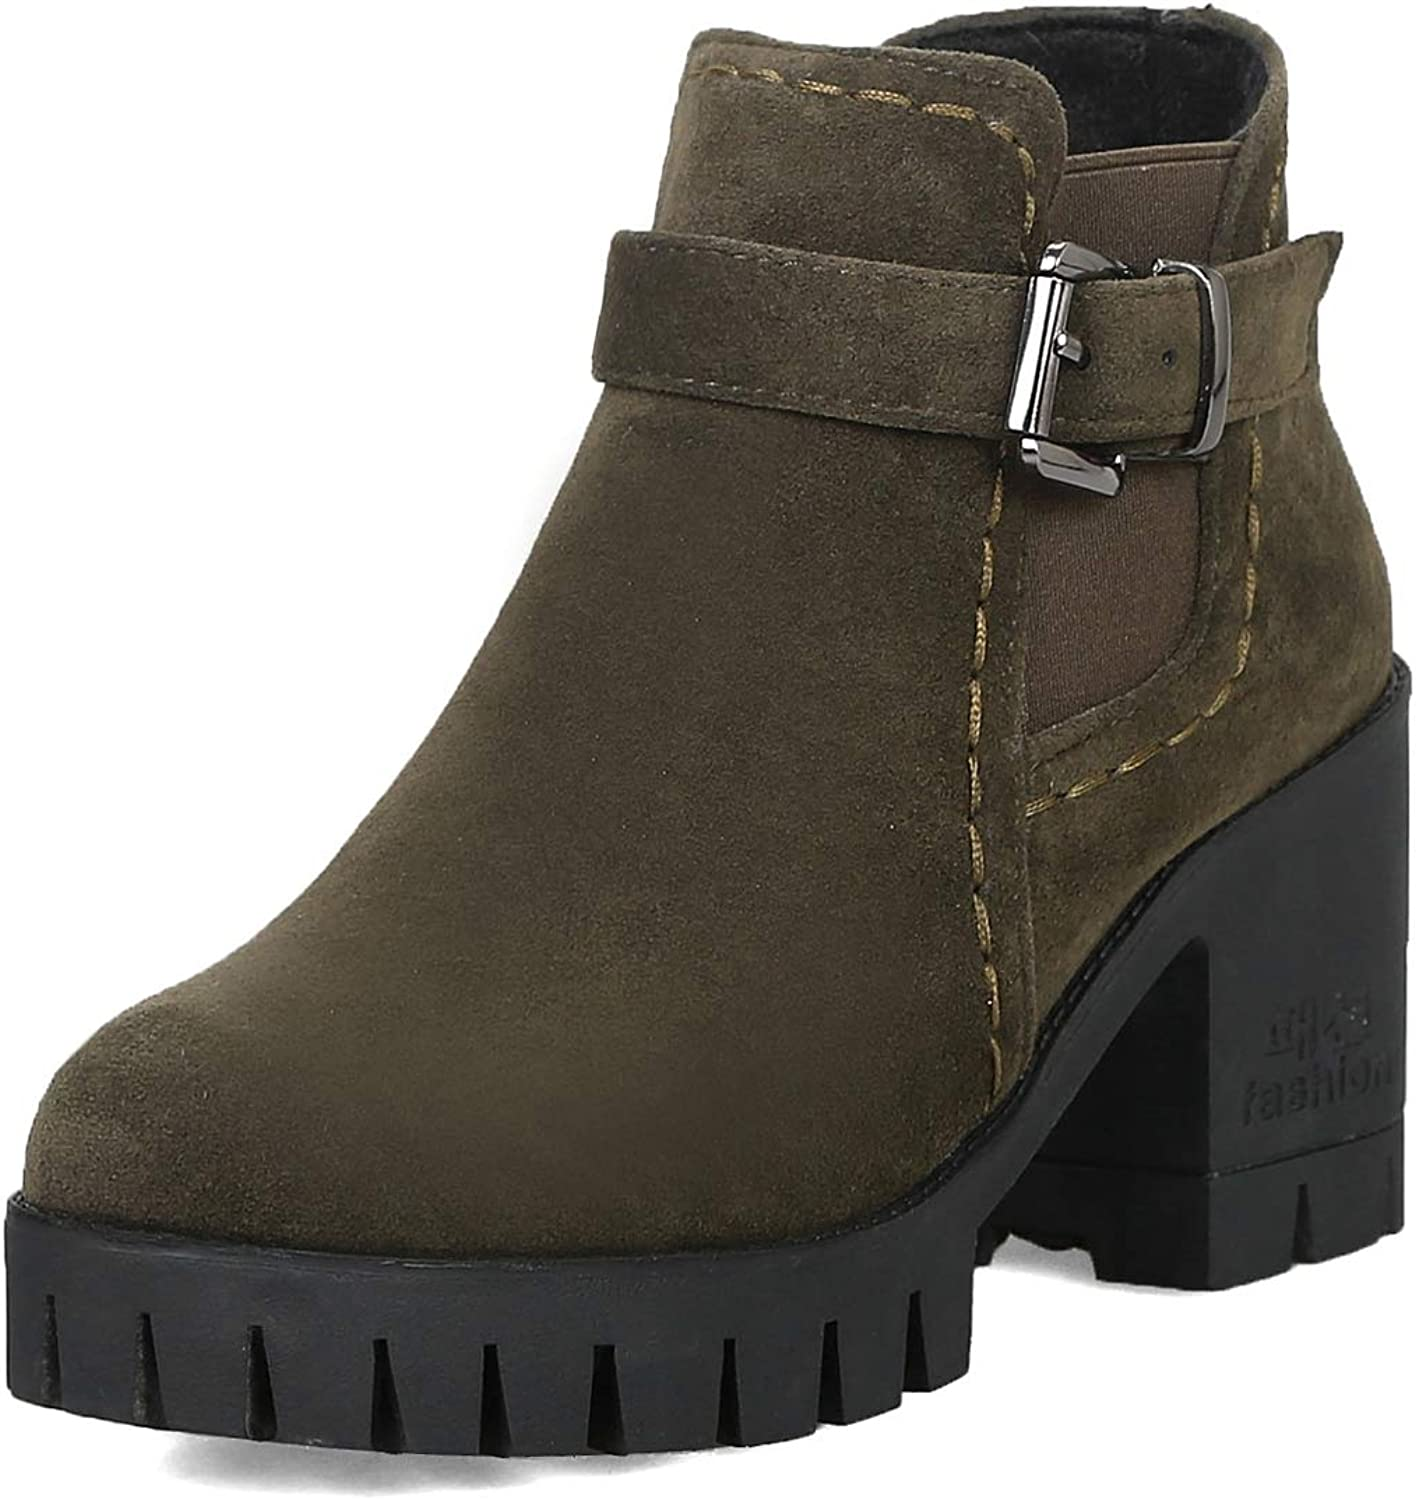 CYBLING Women's Elastic Lug Sole Platform Chunky Ankle Boots Thigh High Chelsea Booties